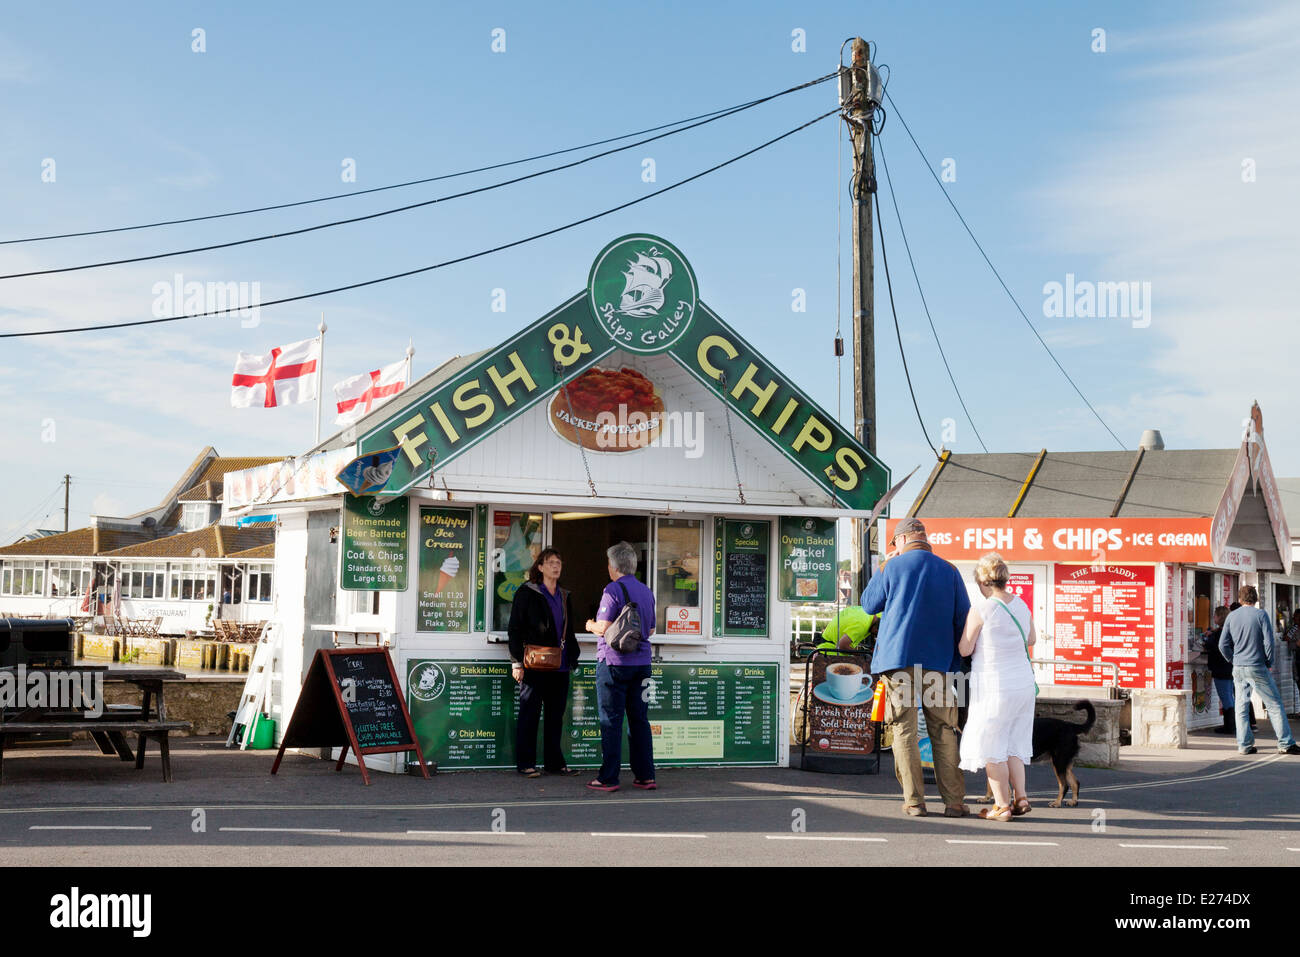 Fish and Chips shop, West Bay, Dorset England UK - Stock Image